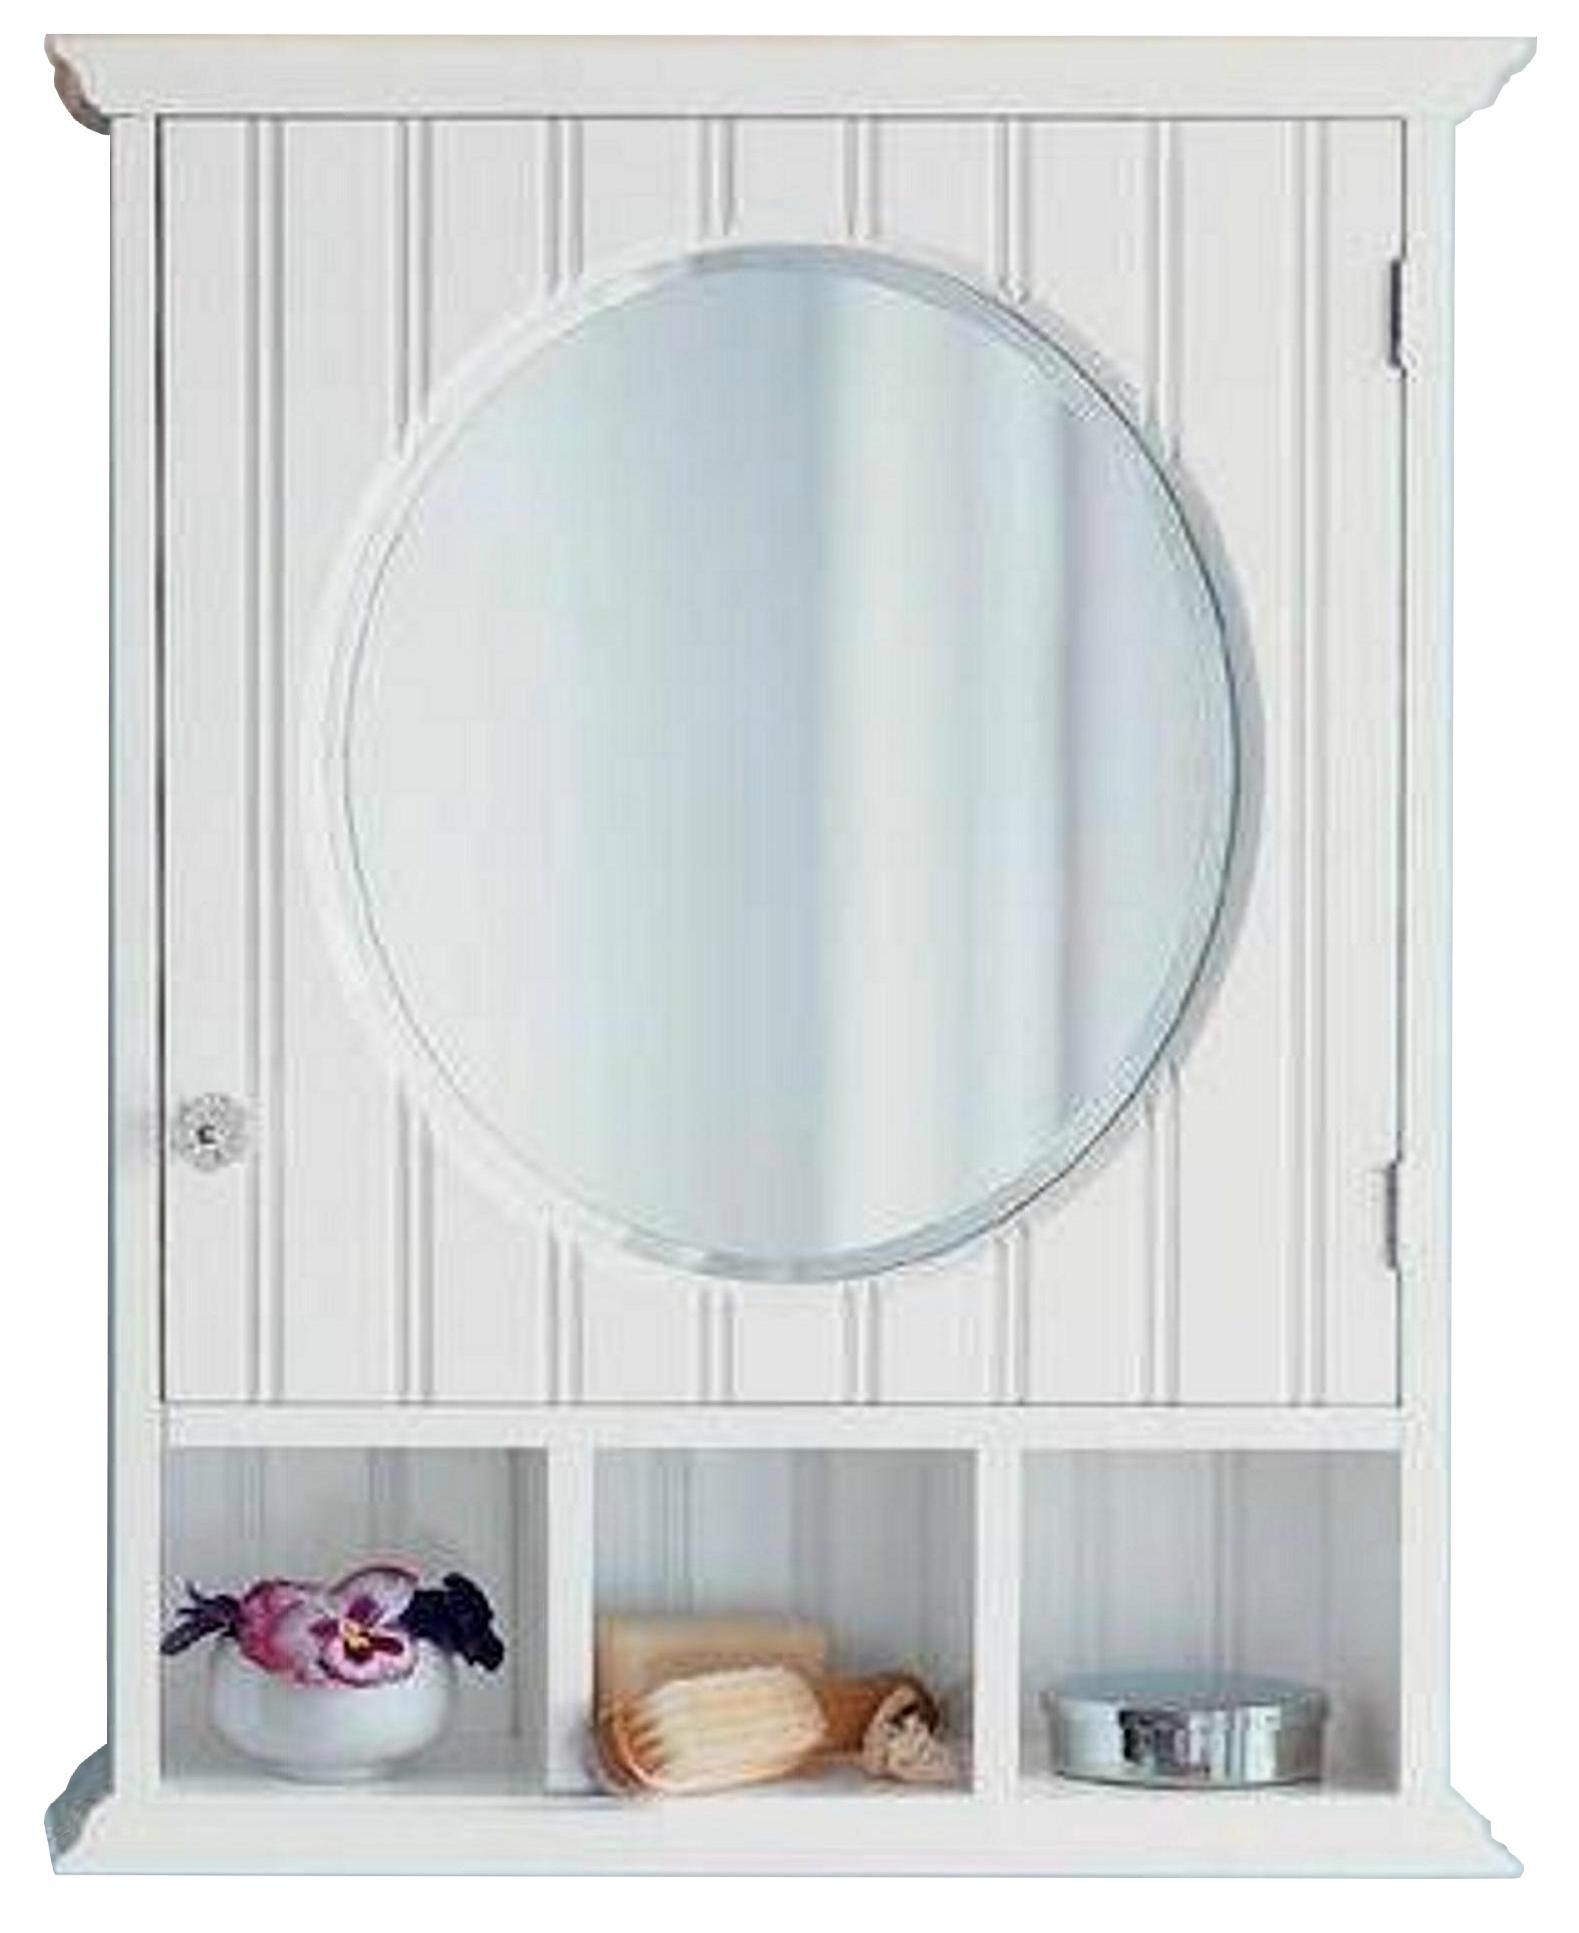 Pinstriped Round Mirrored Bathroom Medicine Cabinets Wd 1703 Mighty Taiwan Manufacturer